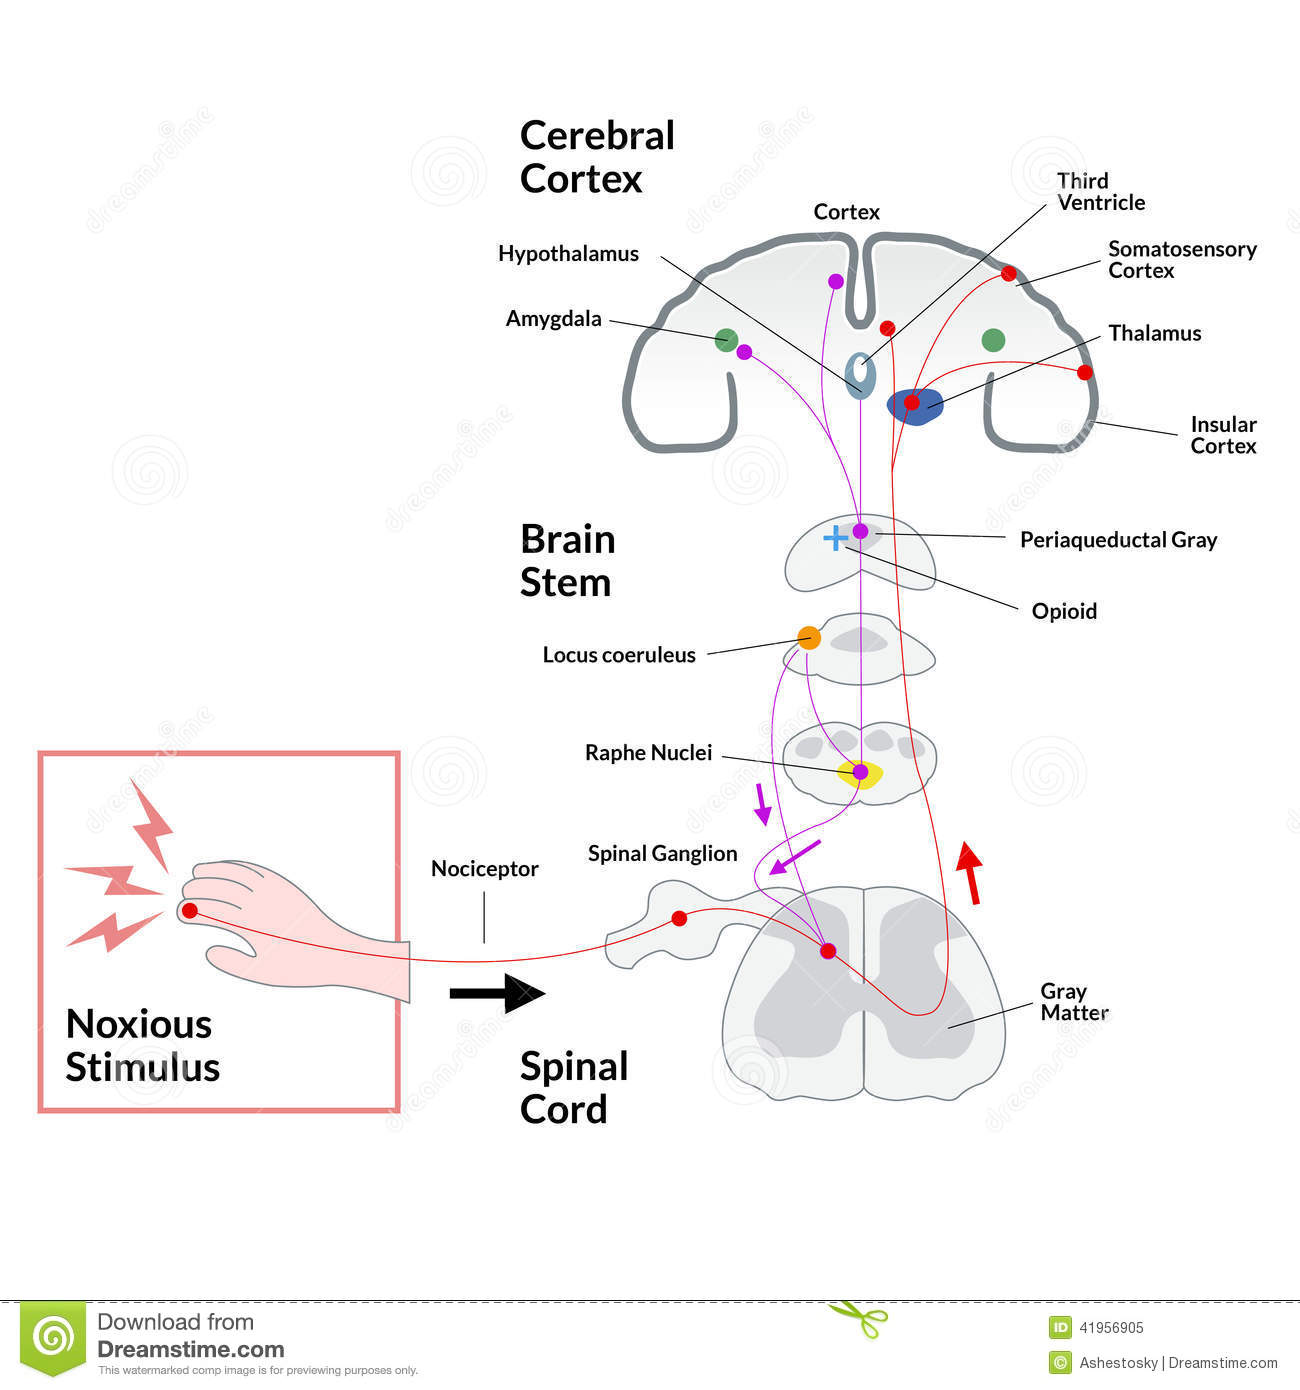 hight resolution of illustrated diagram of stimulus transmission from skin to the brain and response including brain stem passages and brain elaboration